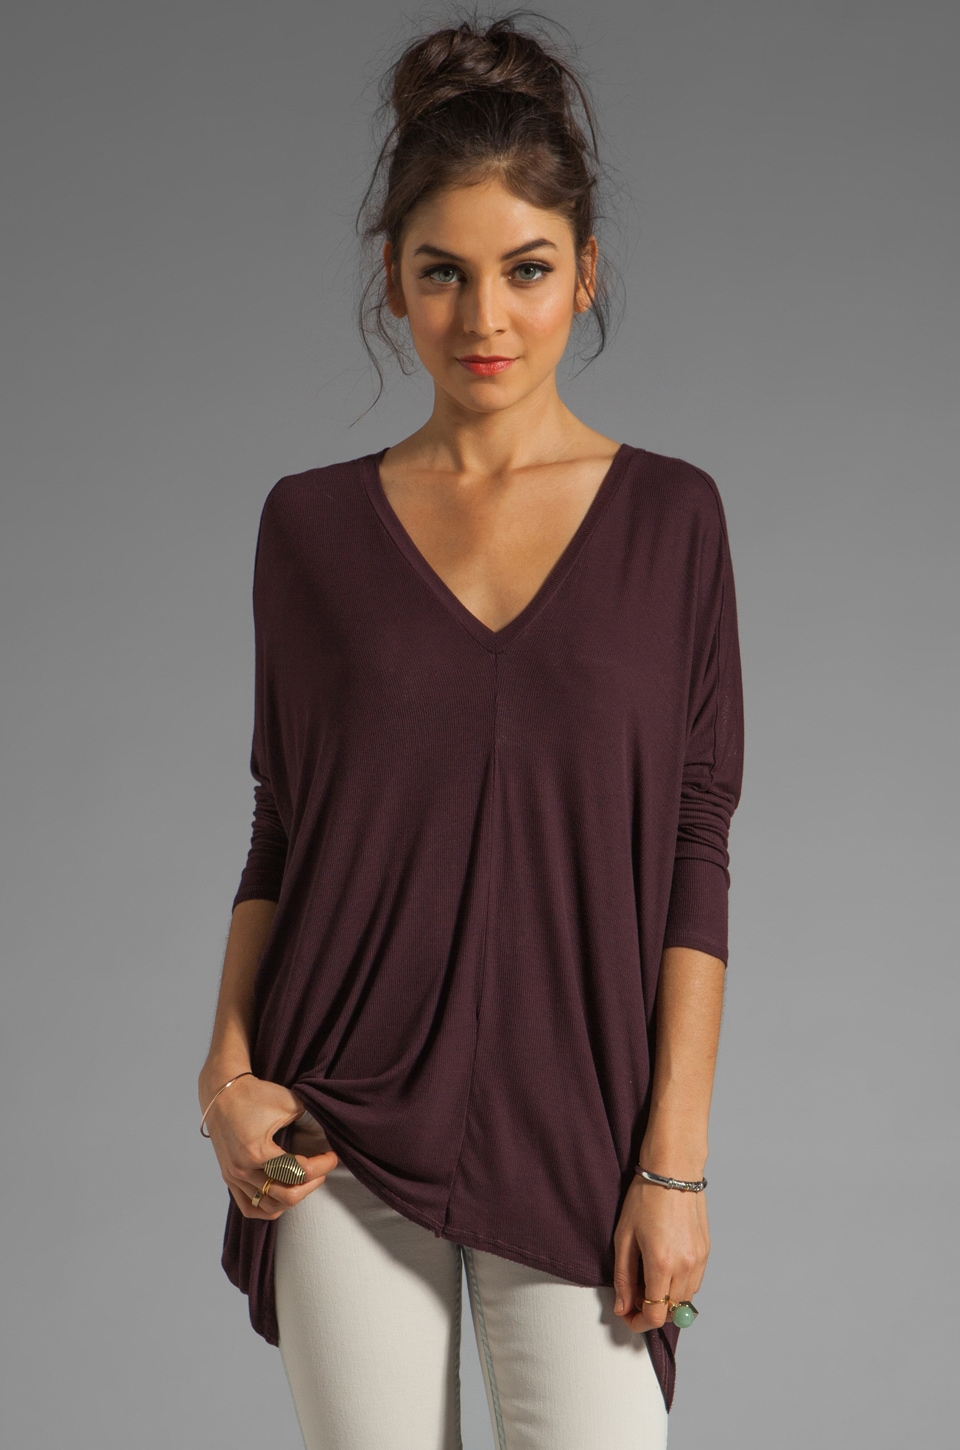 dolan 2x1 Rib 3/4 Sleeve Square Tee in Mystic Purple